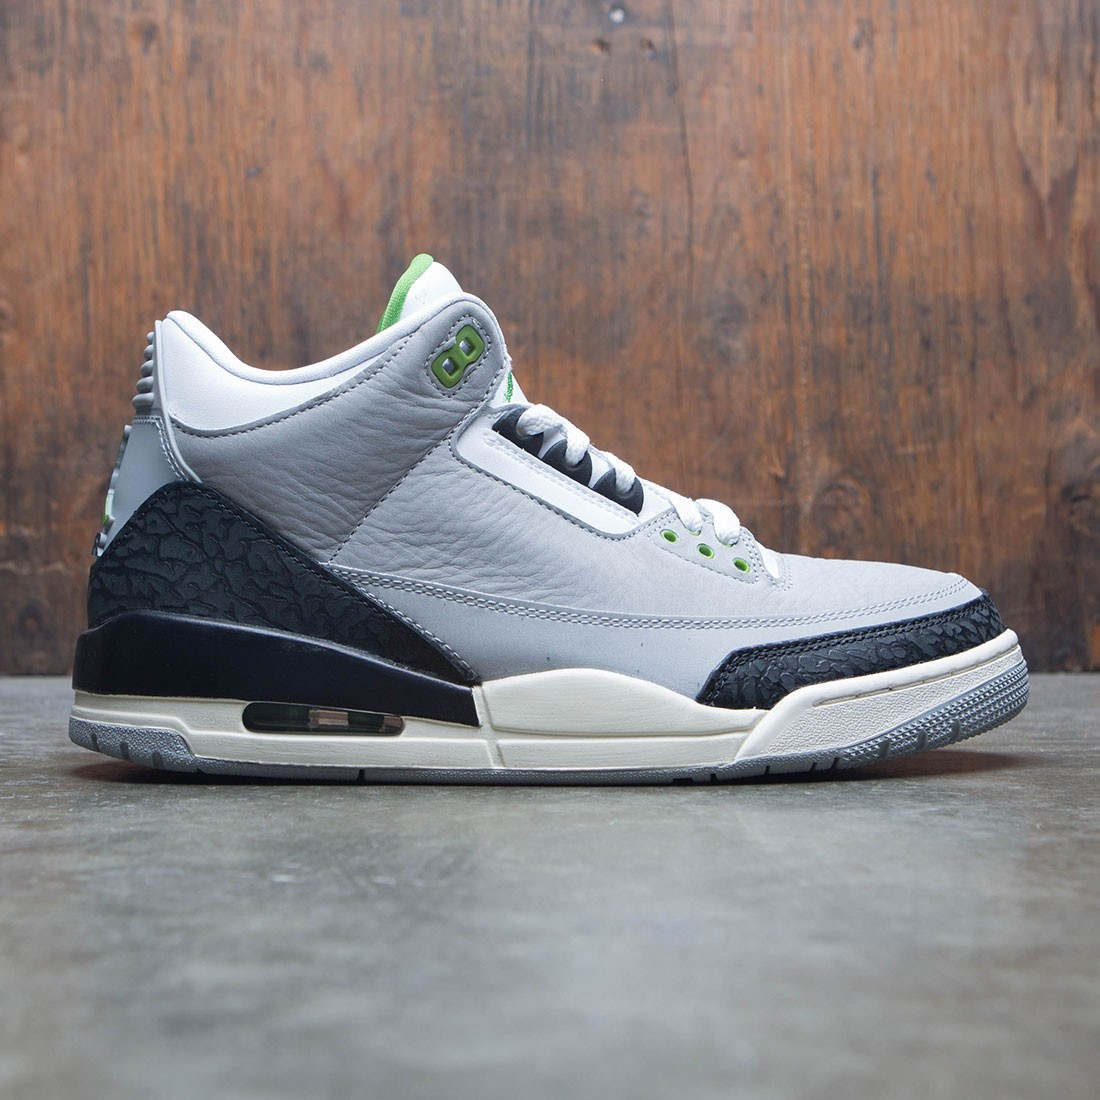 924e23aa524b9c jordan men air jordan 3 retro lt smoke grey chlorophyll black white